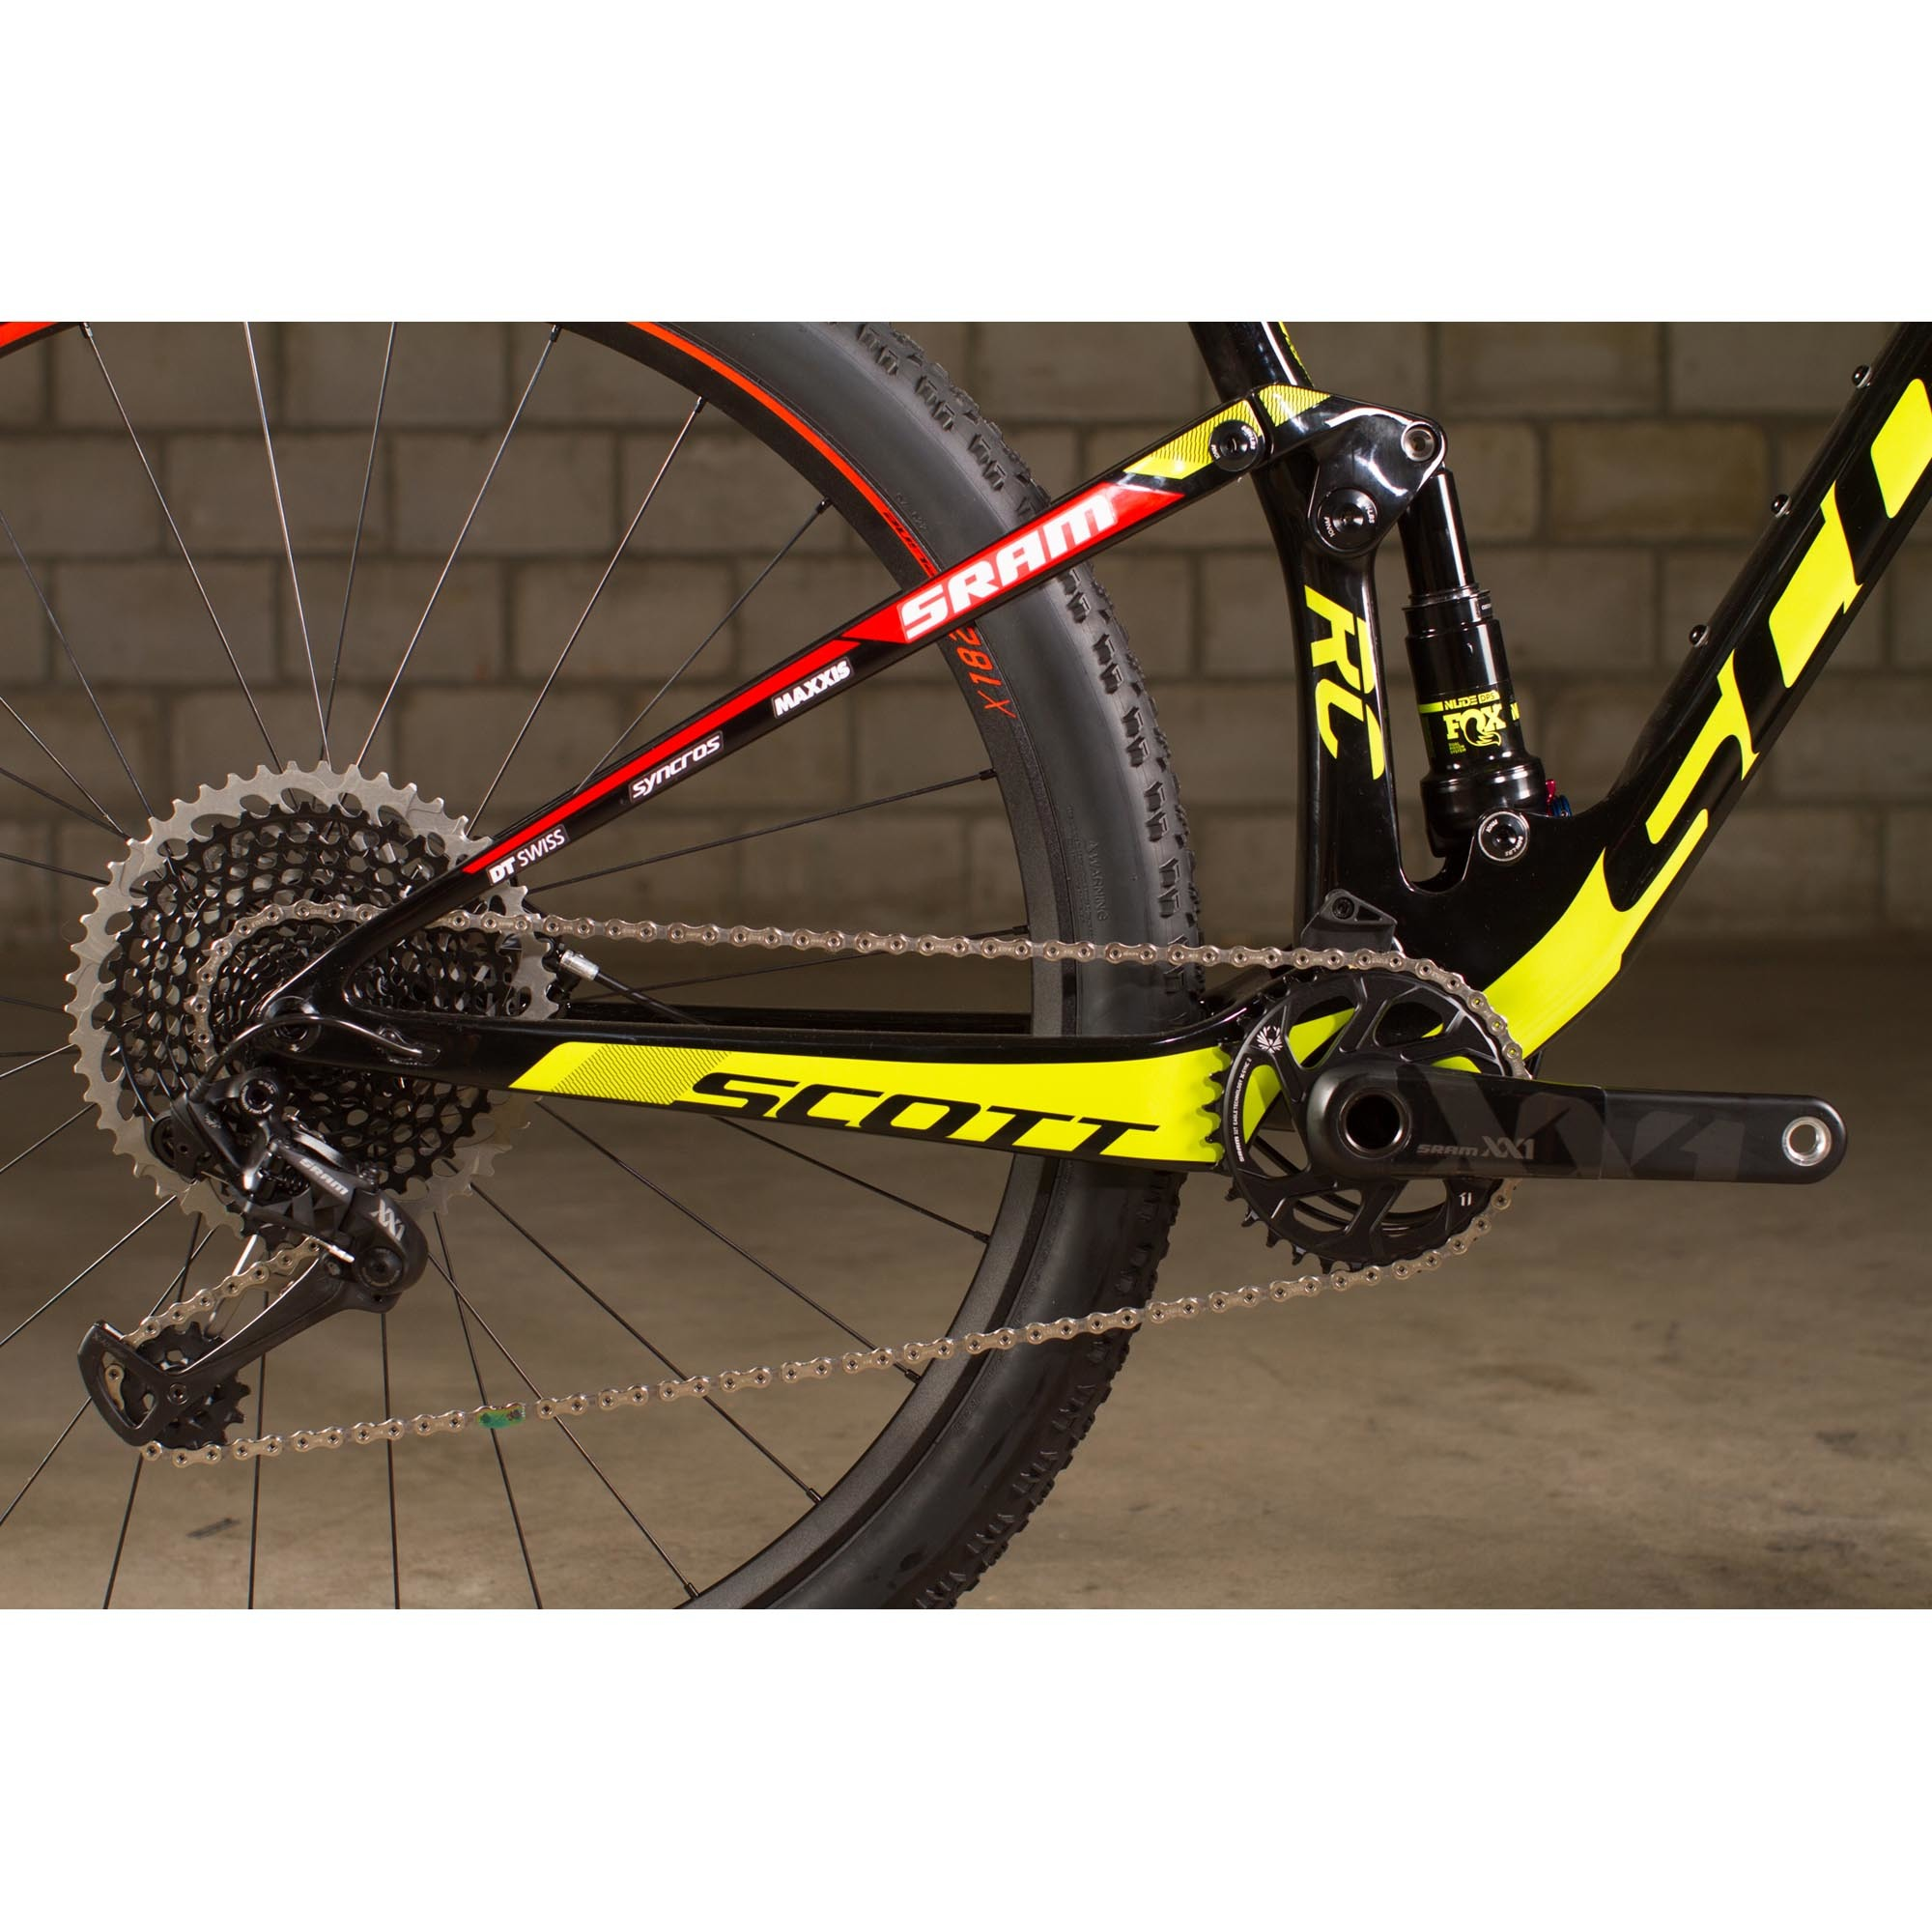 SCOTT Spark RC 900 World Cup Bike